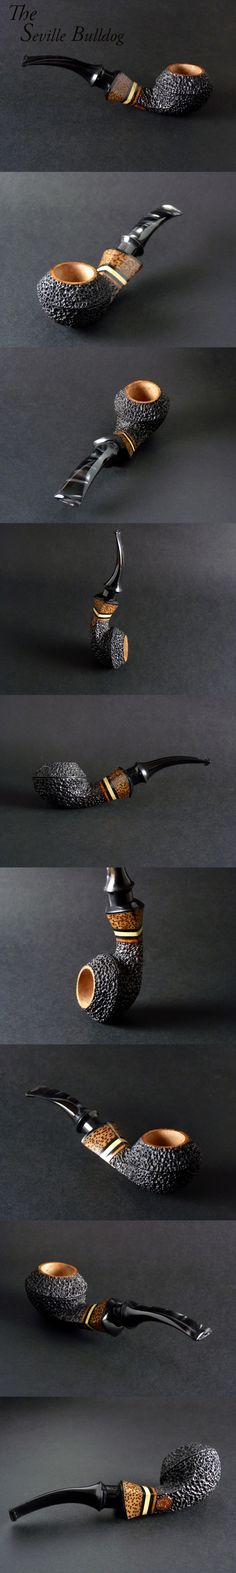 The Seville Bulldog by Downie Pipes